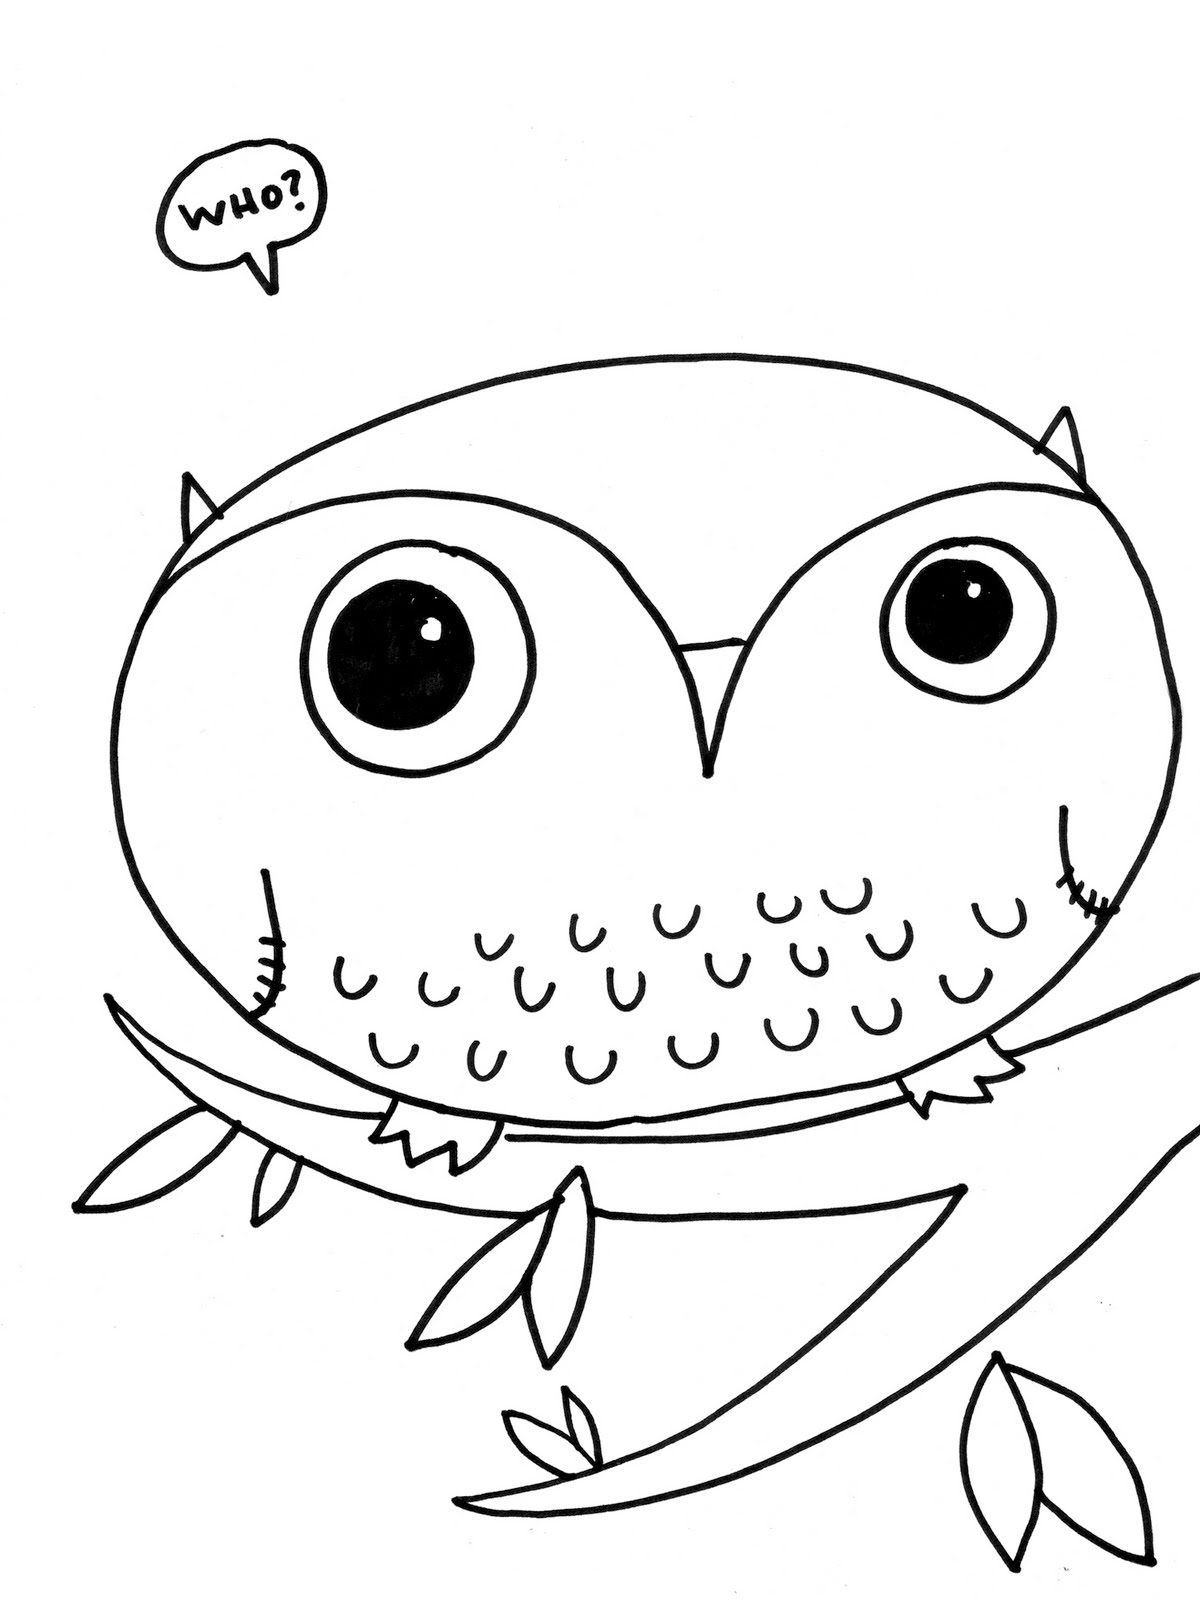 Free Printable Owl Coloring Pages For Kids Free Color Pages For Print